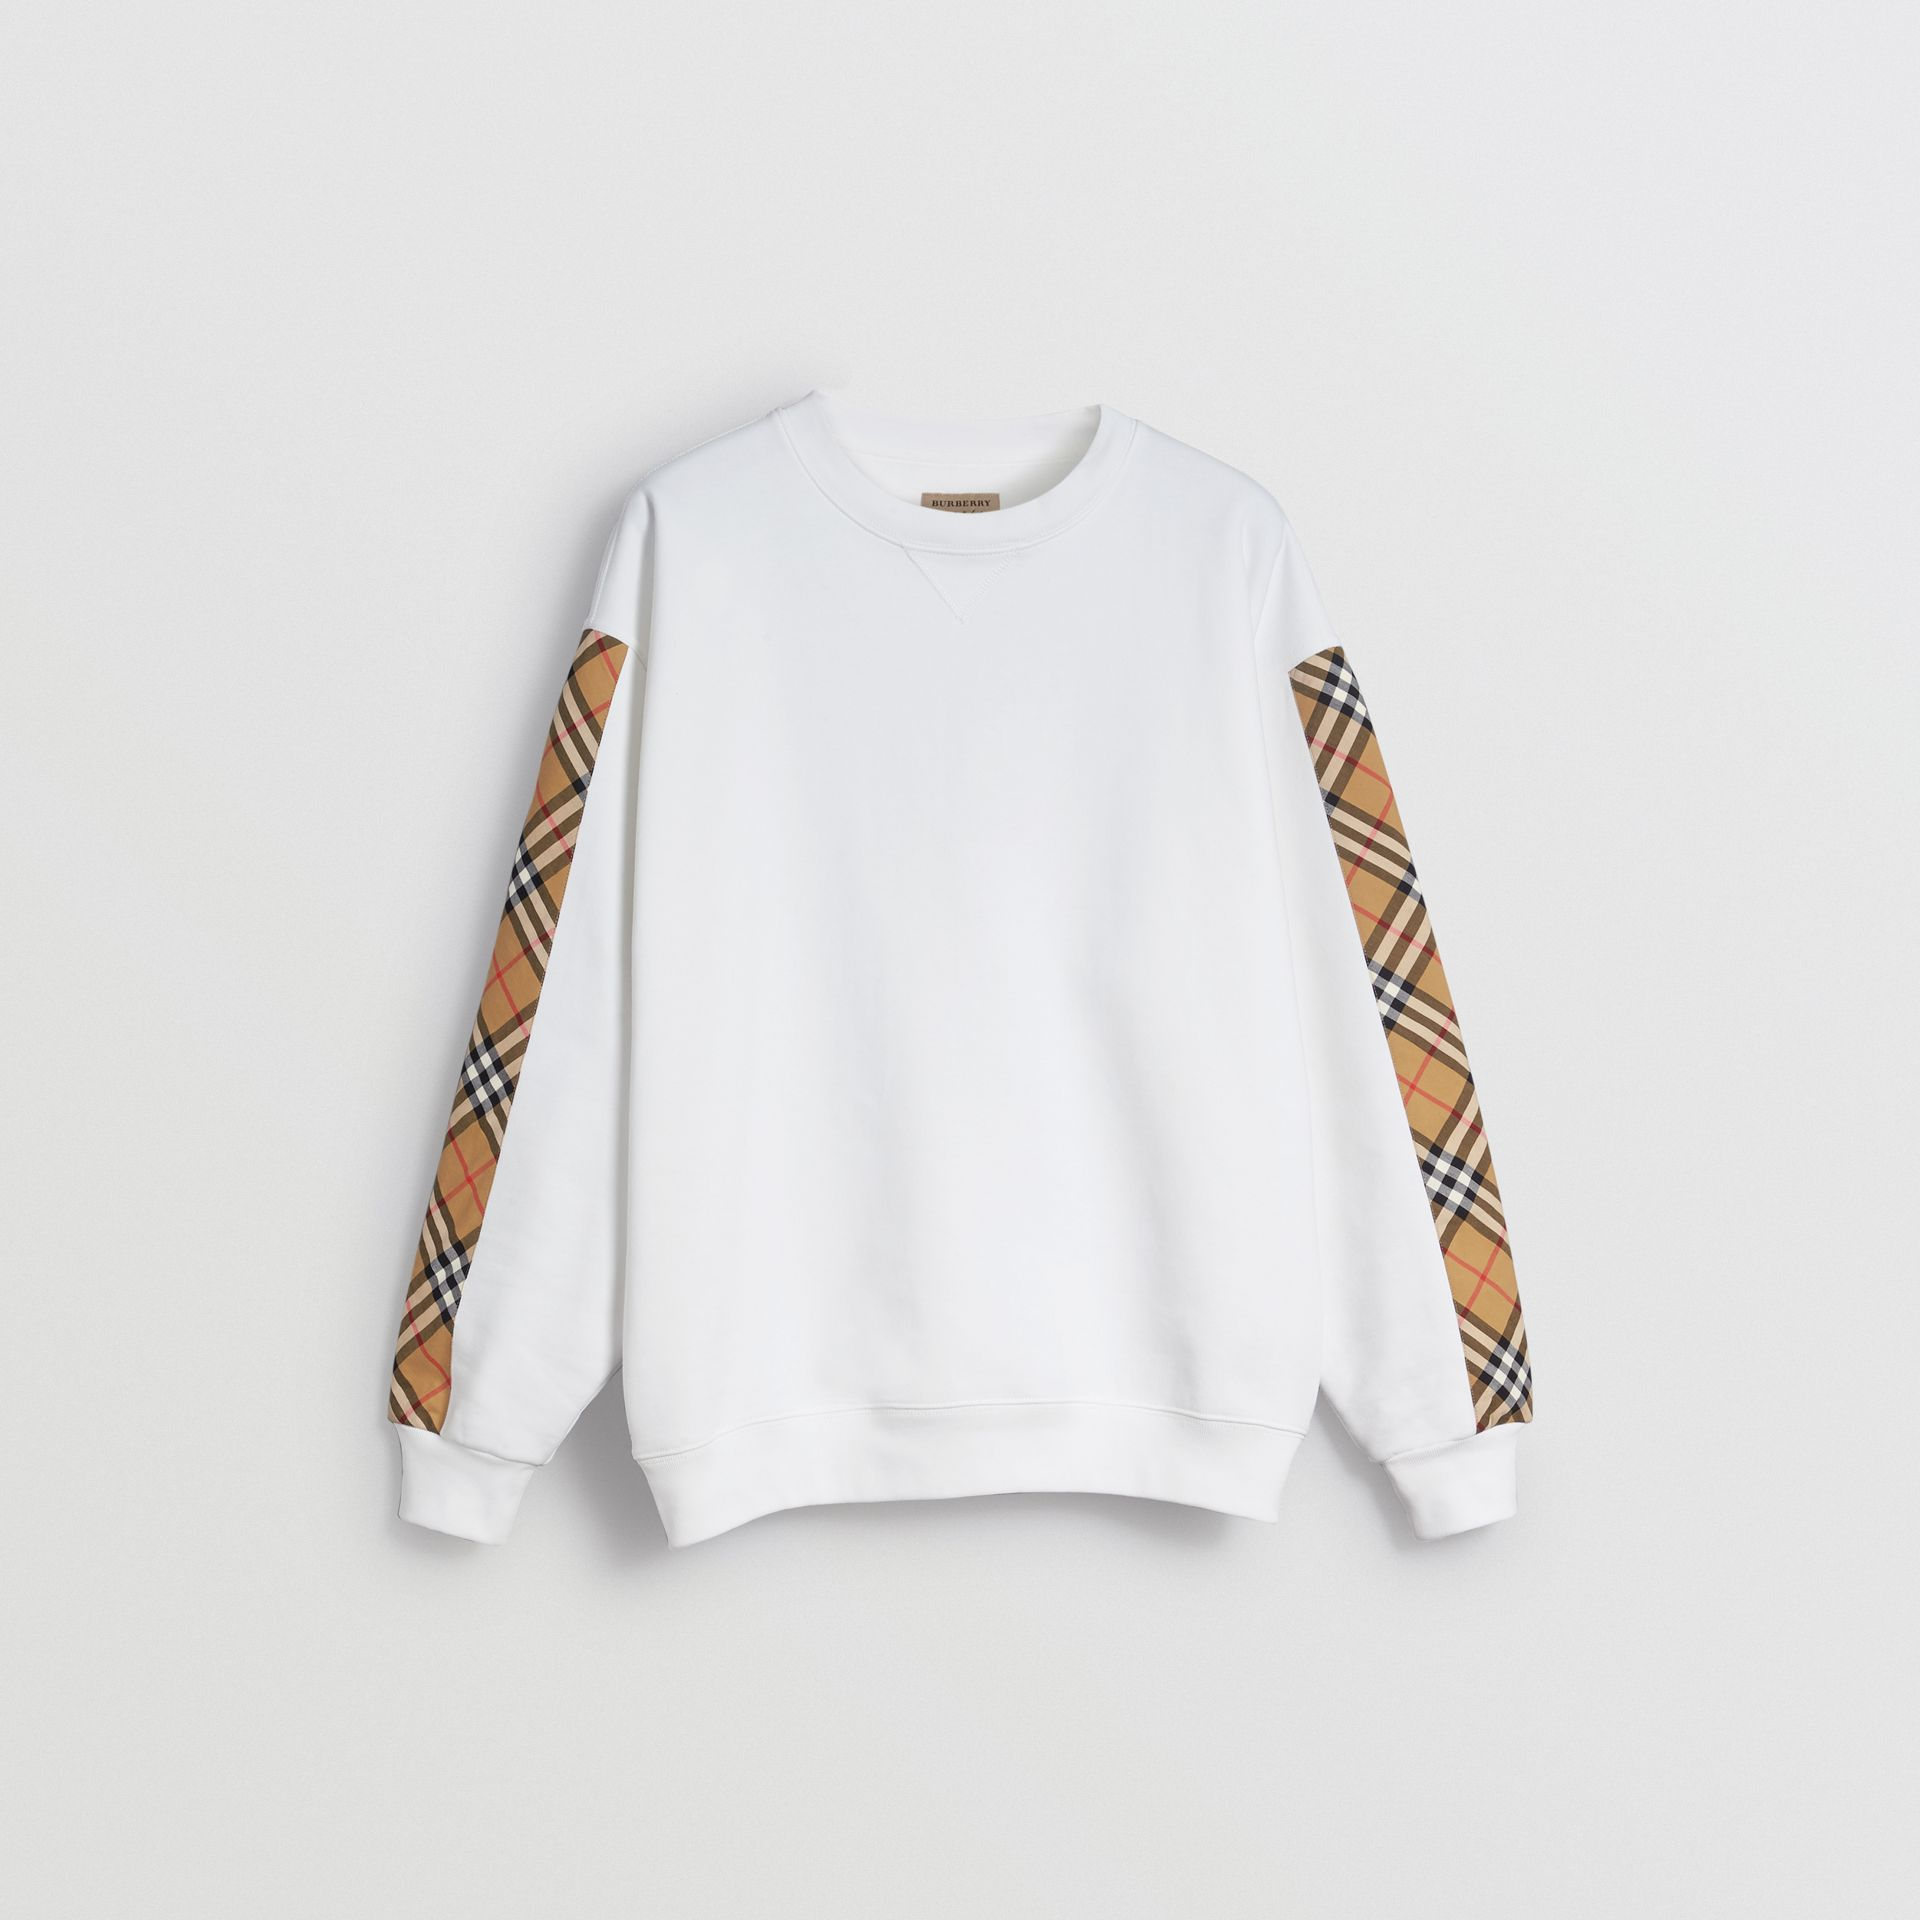 Vintage Check Detail Cotton Blend Sweatshirt in White - Women | Burberry Canada - gallery image 3